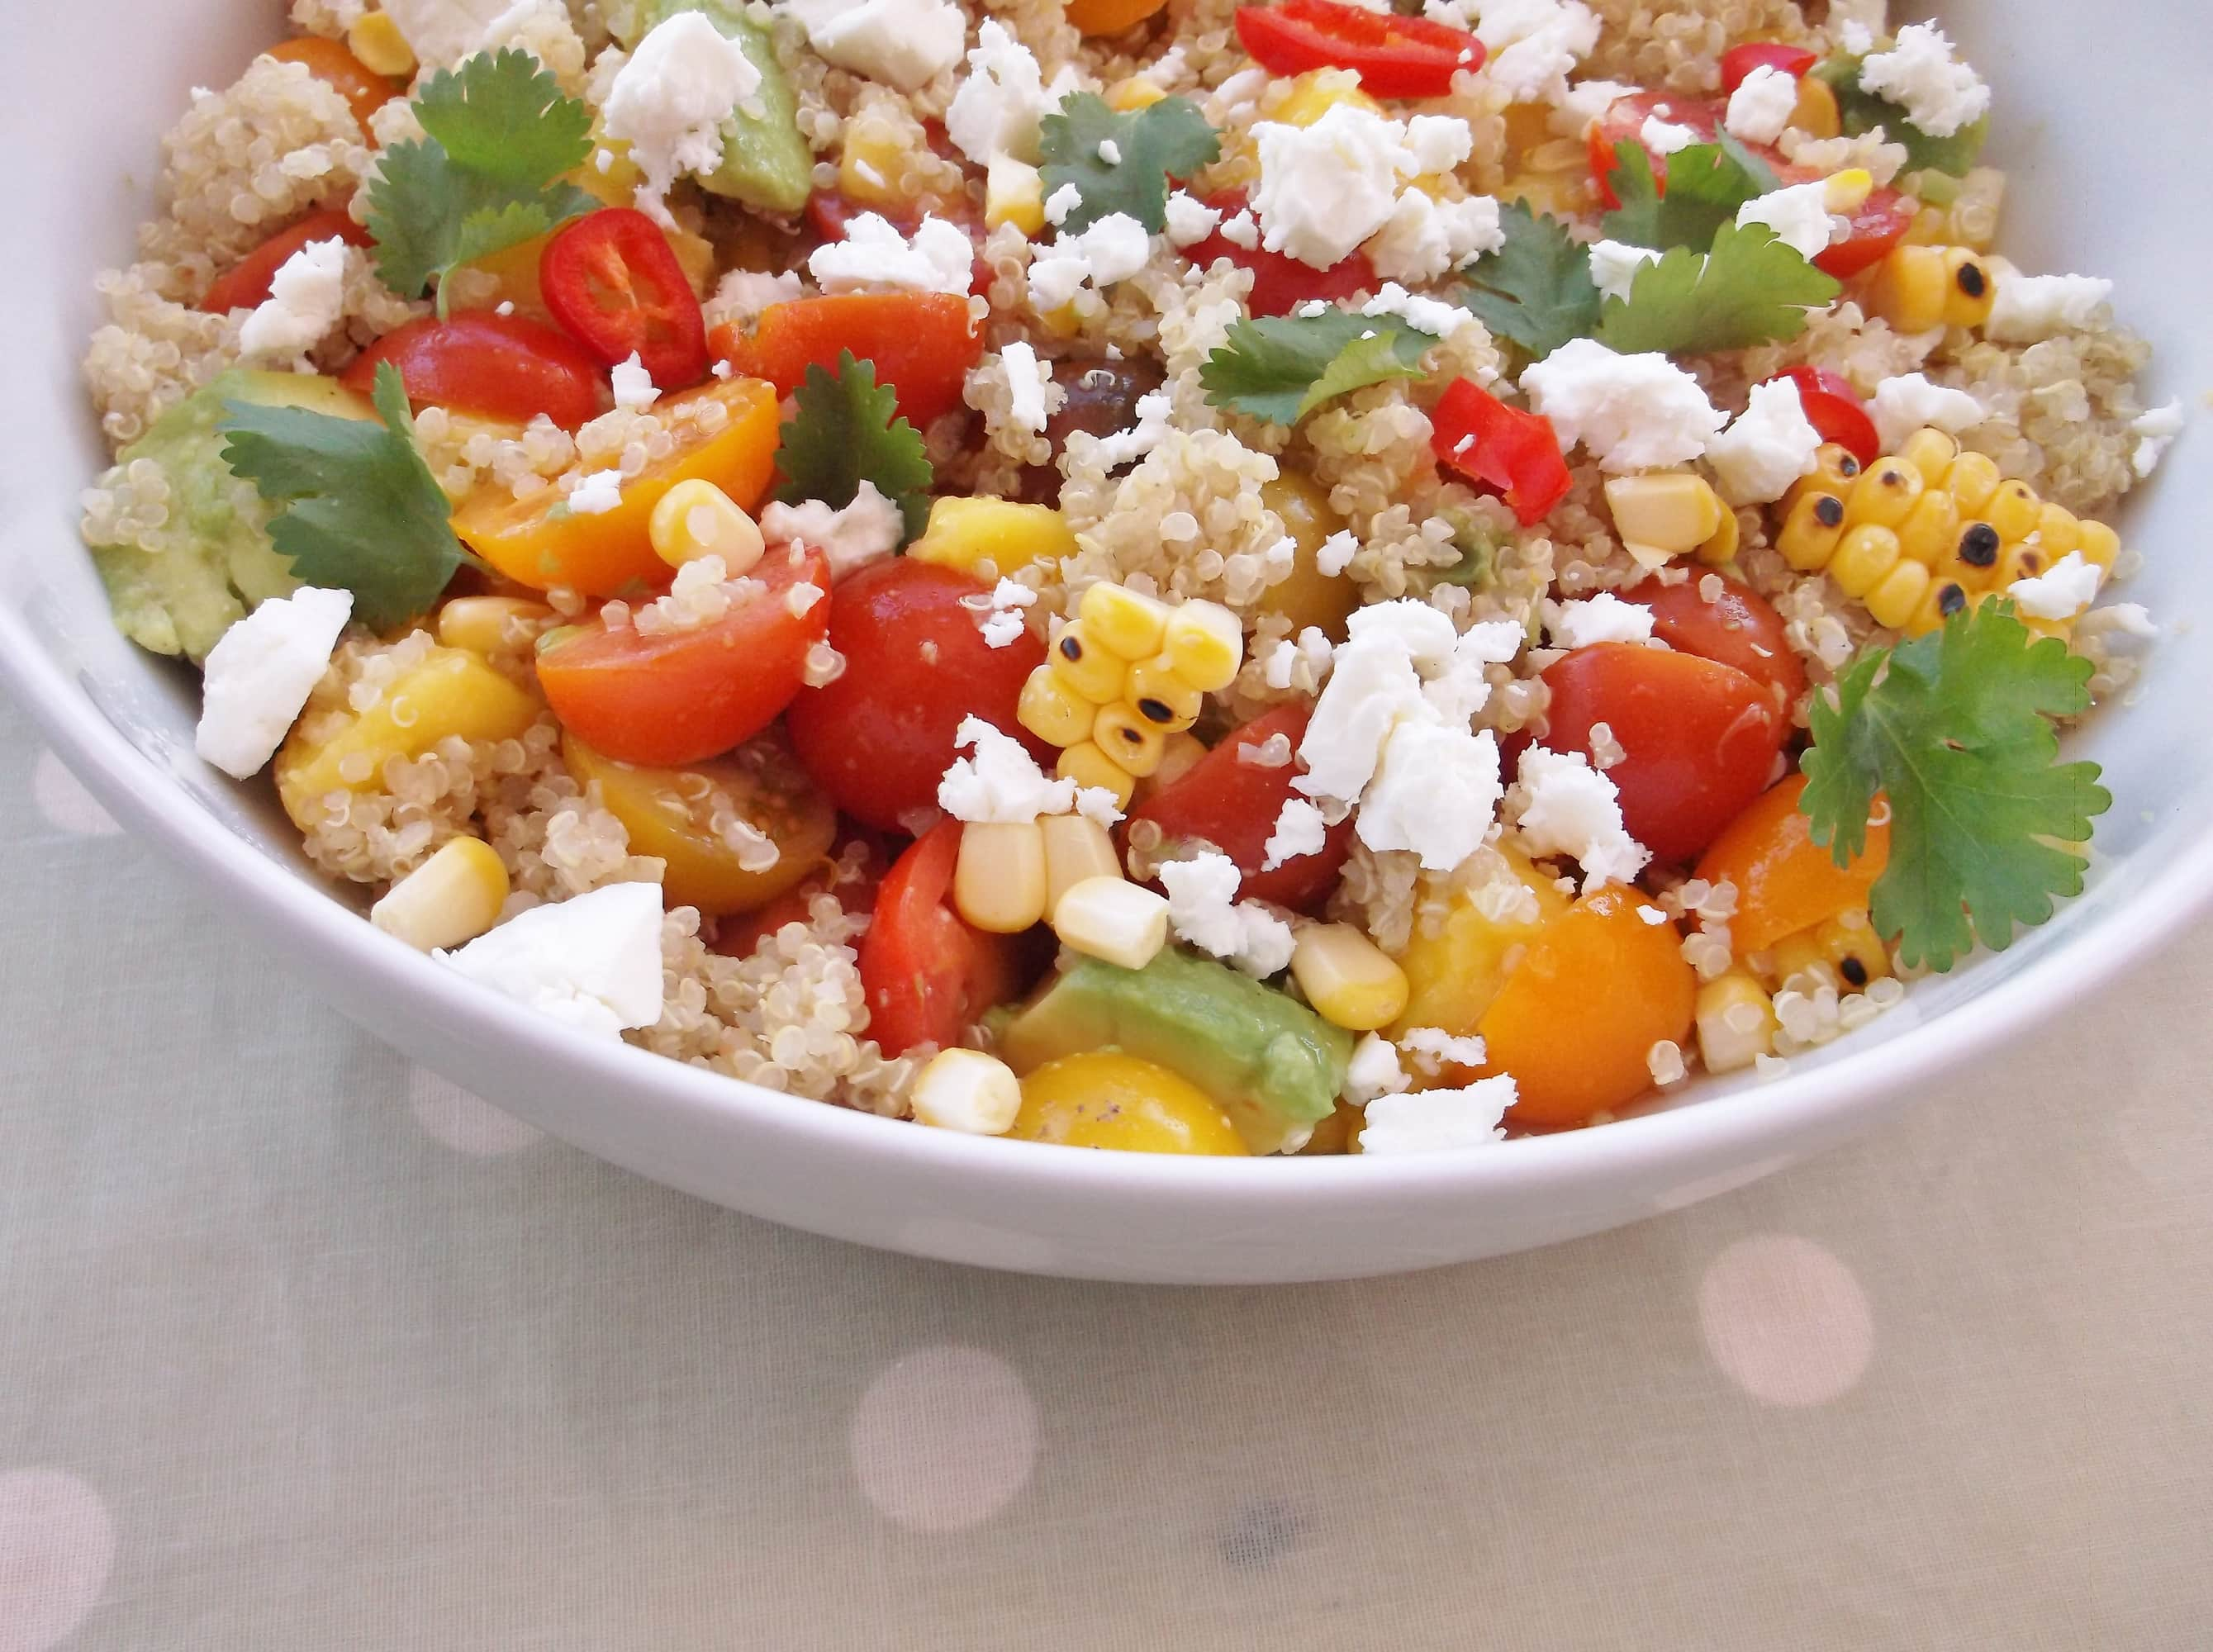 Review of jamie olivers everyday super food easy peasy foodie jamie olivers grilled corn and quinoa salad with mango tomatoes avocado and feta ccuart Gallery